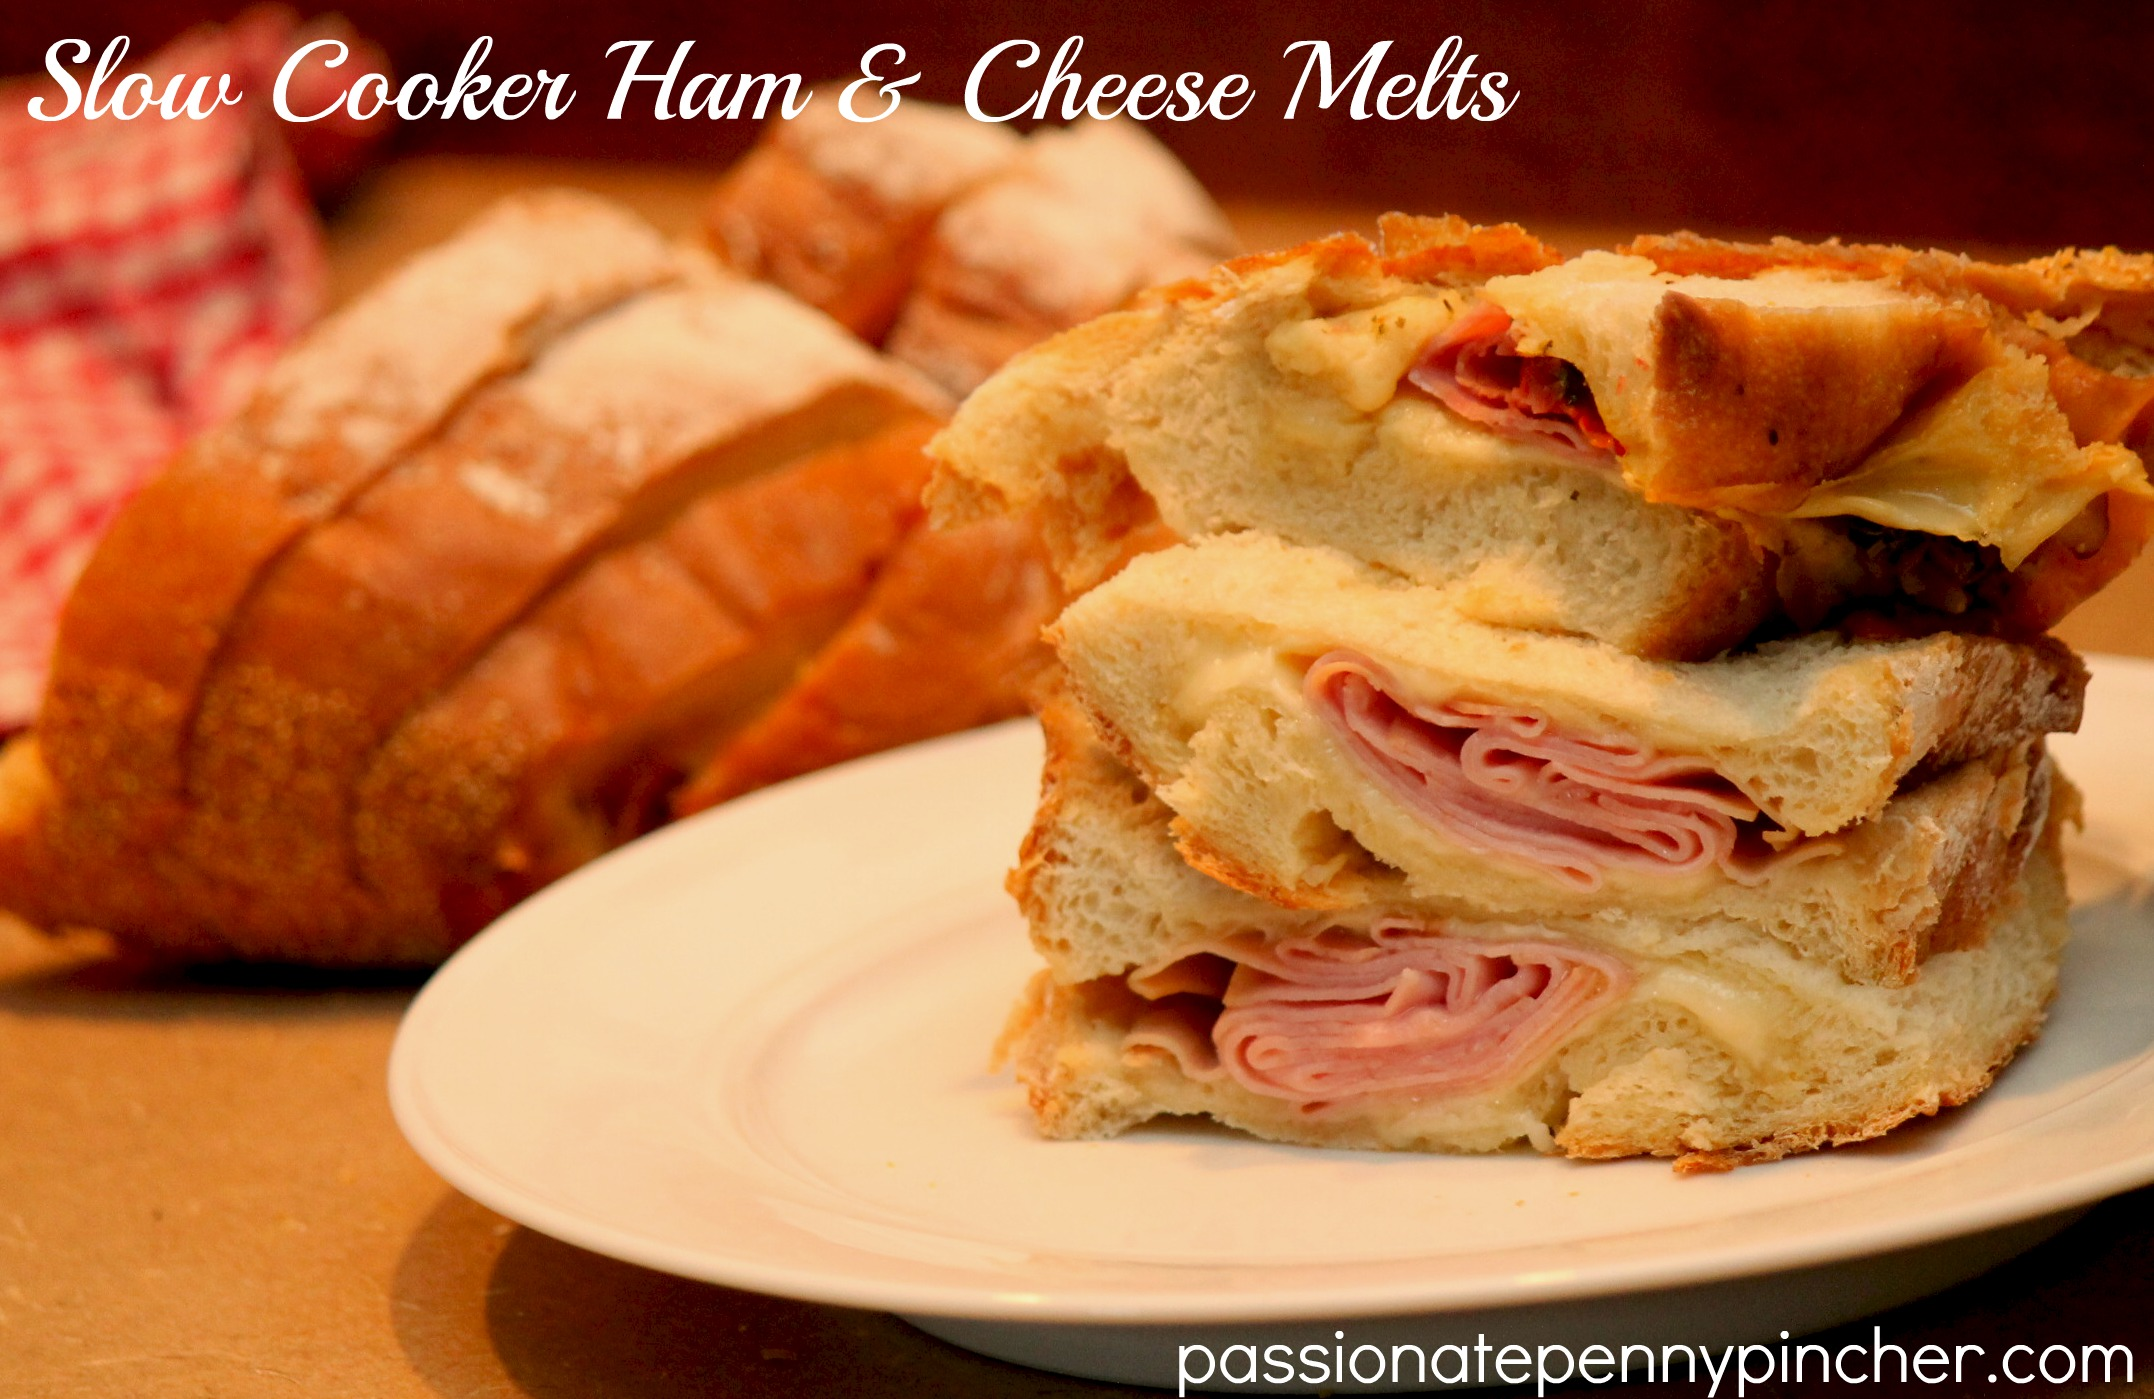 Slow Cooker Ham & Cheese Melts